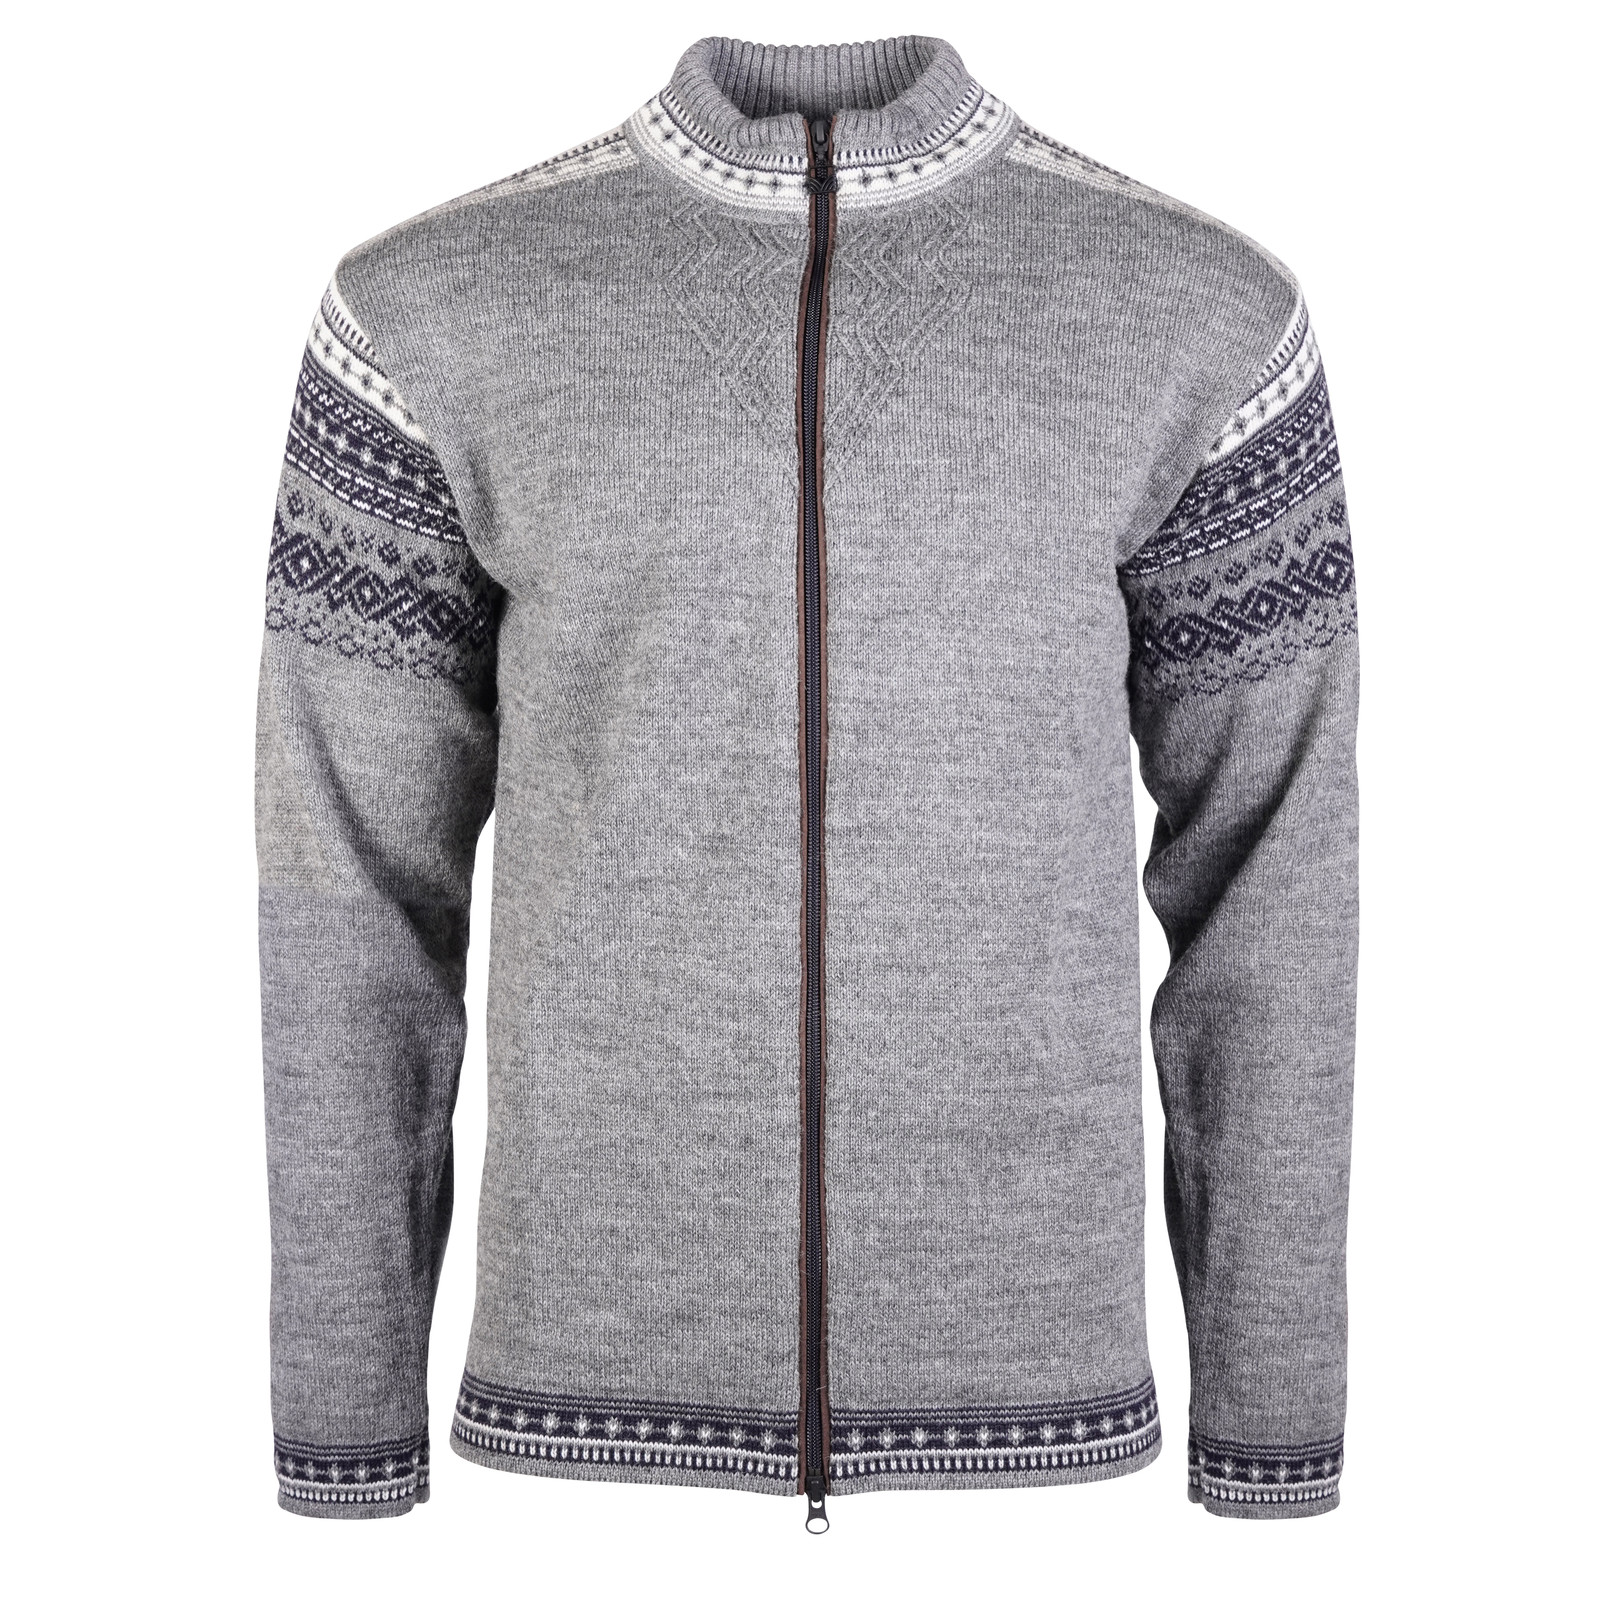 Dale of Norway Bergen Cardigan, Mens - Smoke/Navy/Off White , 83171-E